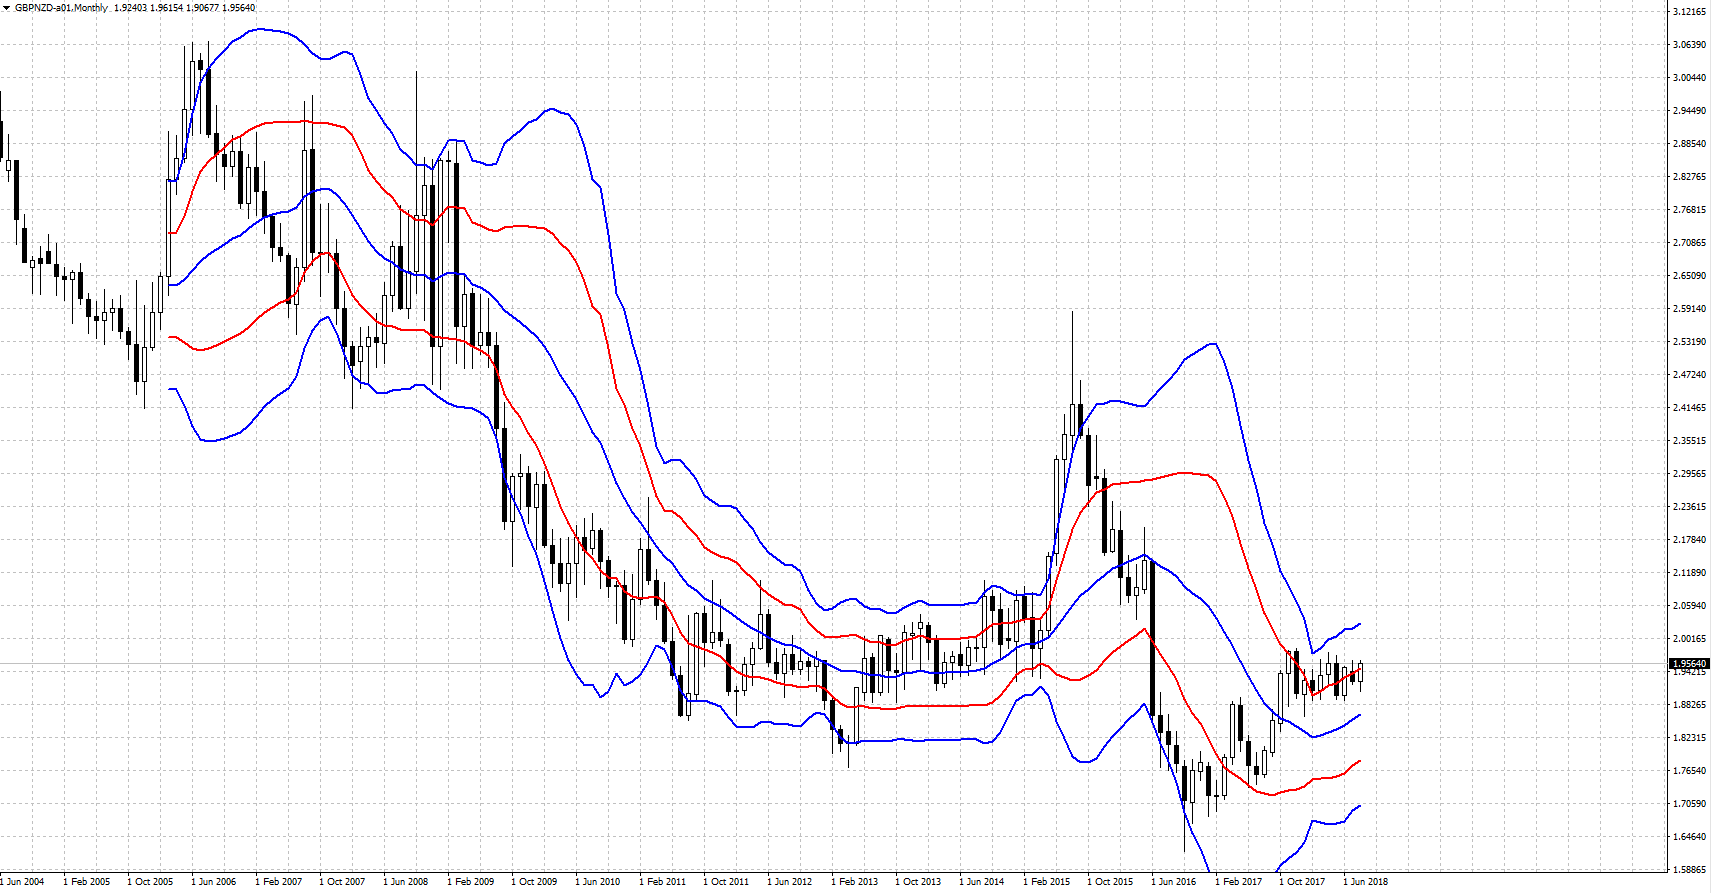 GBPNZD-201808.PNG